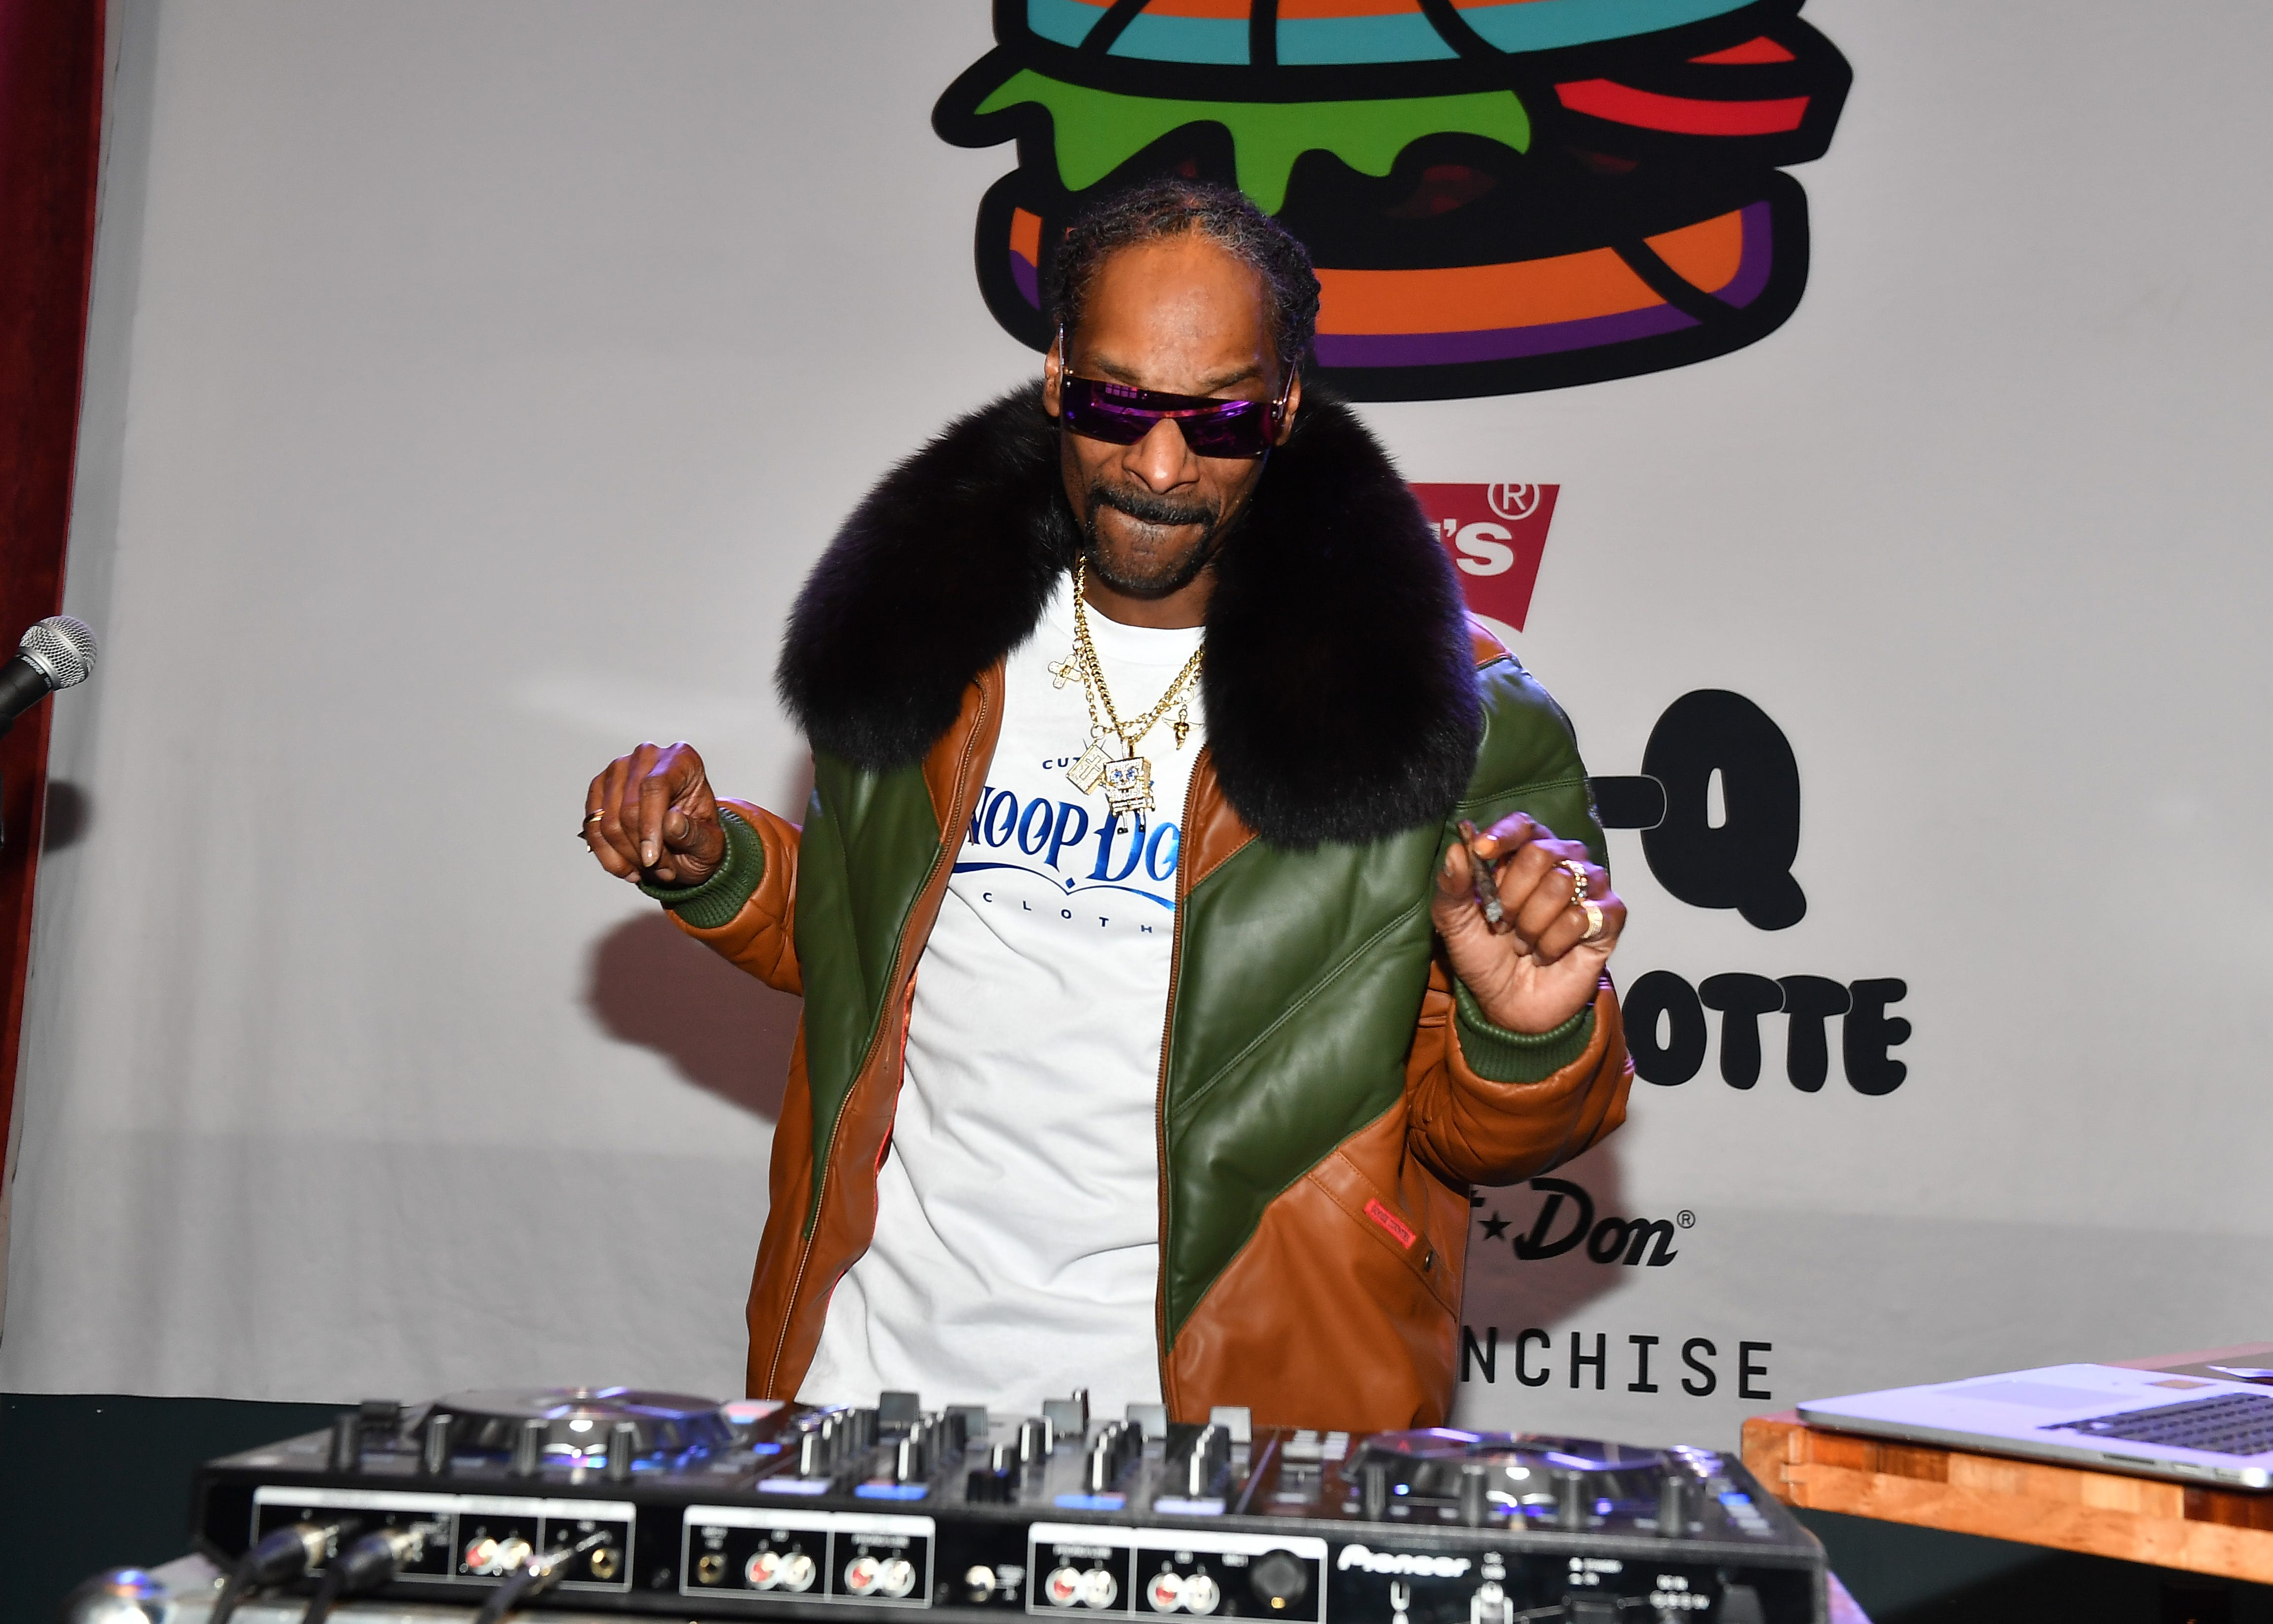 Snoop Dogg rips Lakers, calls for Luke Walton's firing and offers his box seats for $5